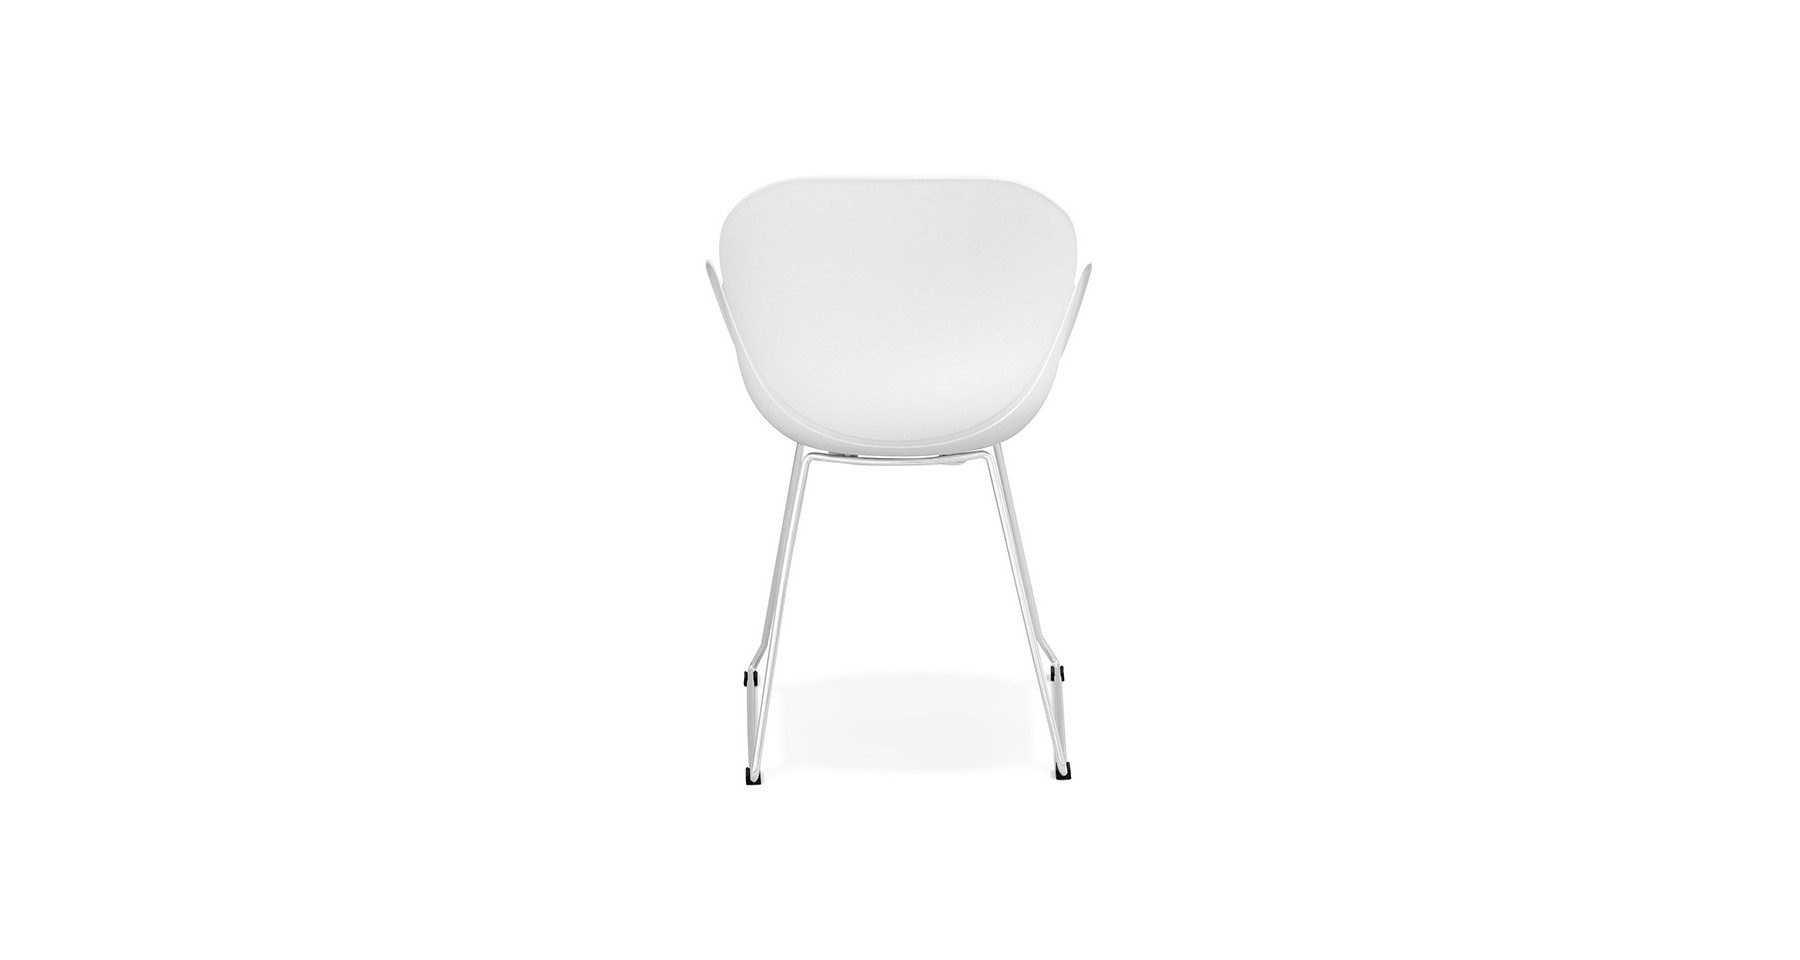 chaise blanche scandinave accoudoirs avec pieds m tal ross n